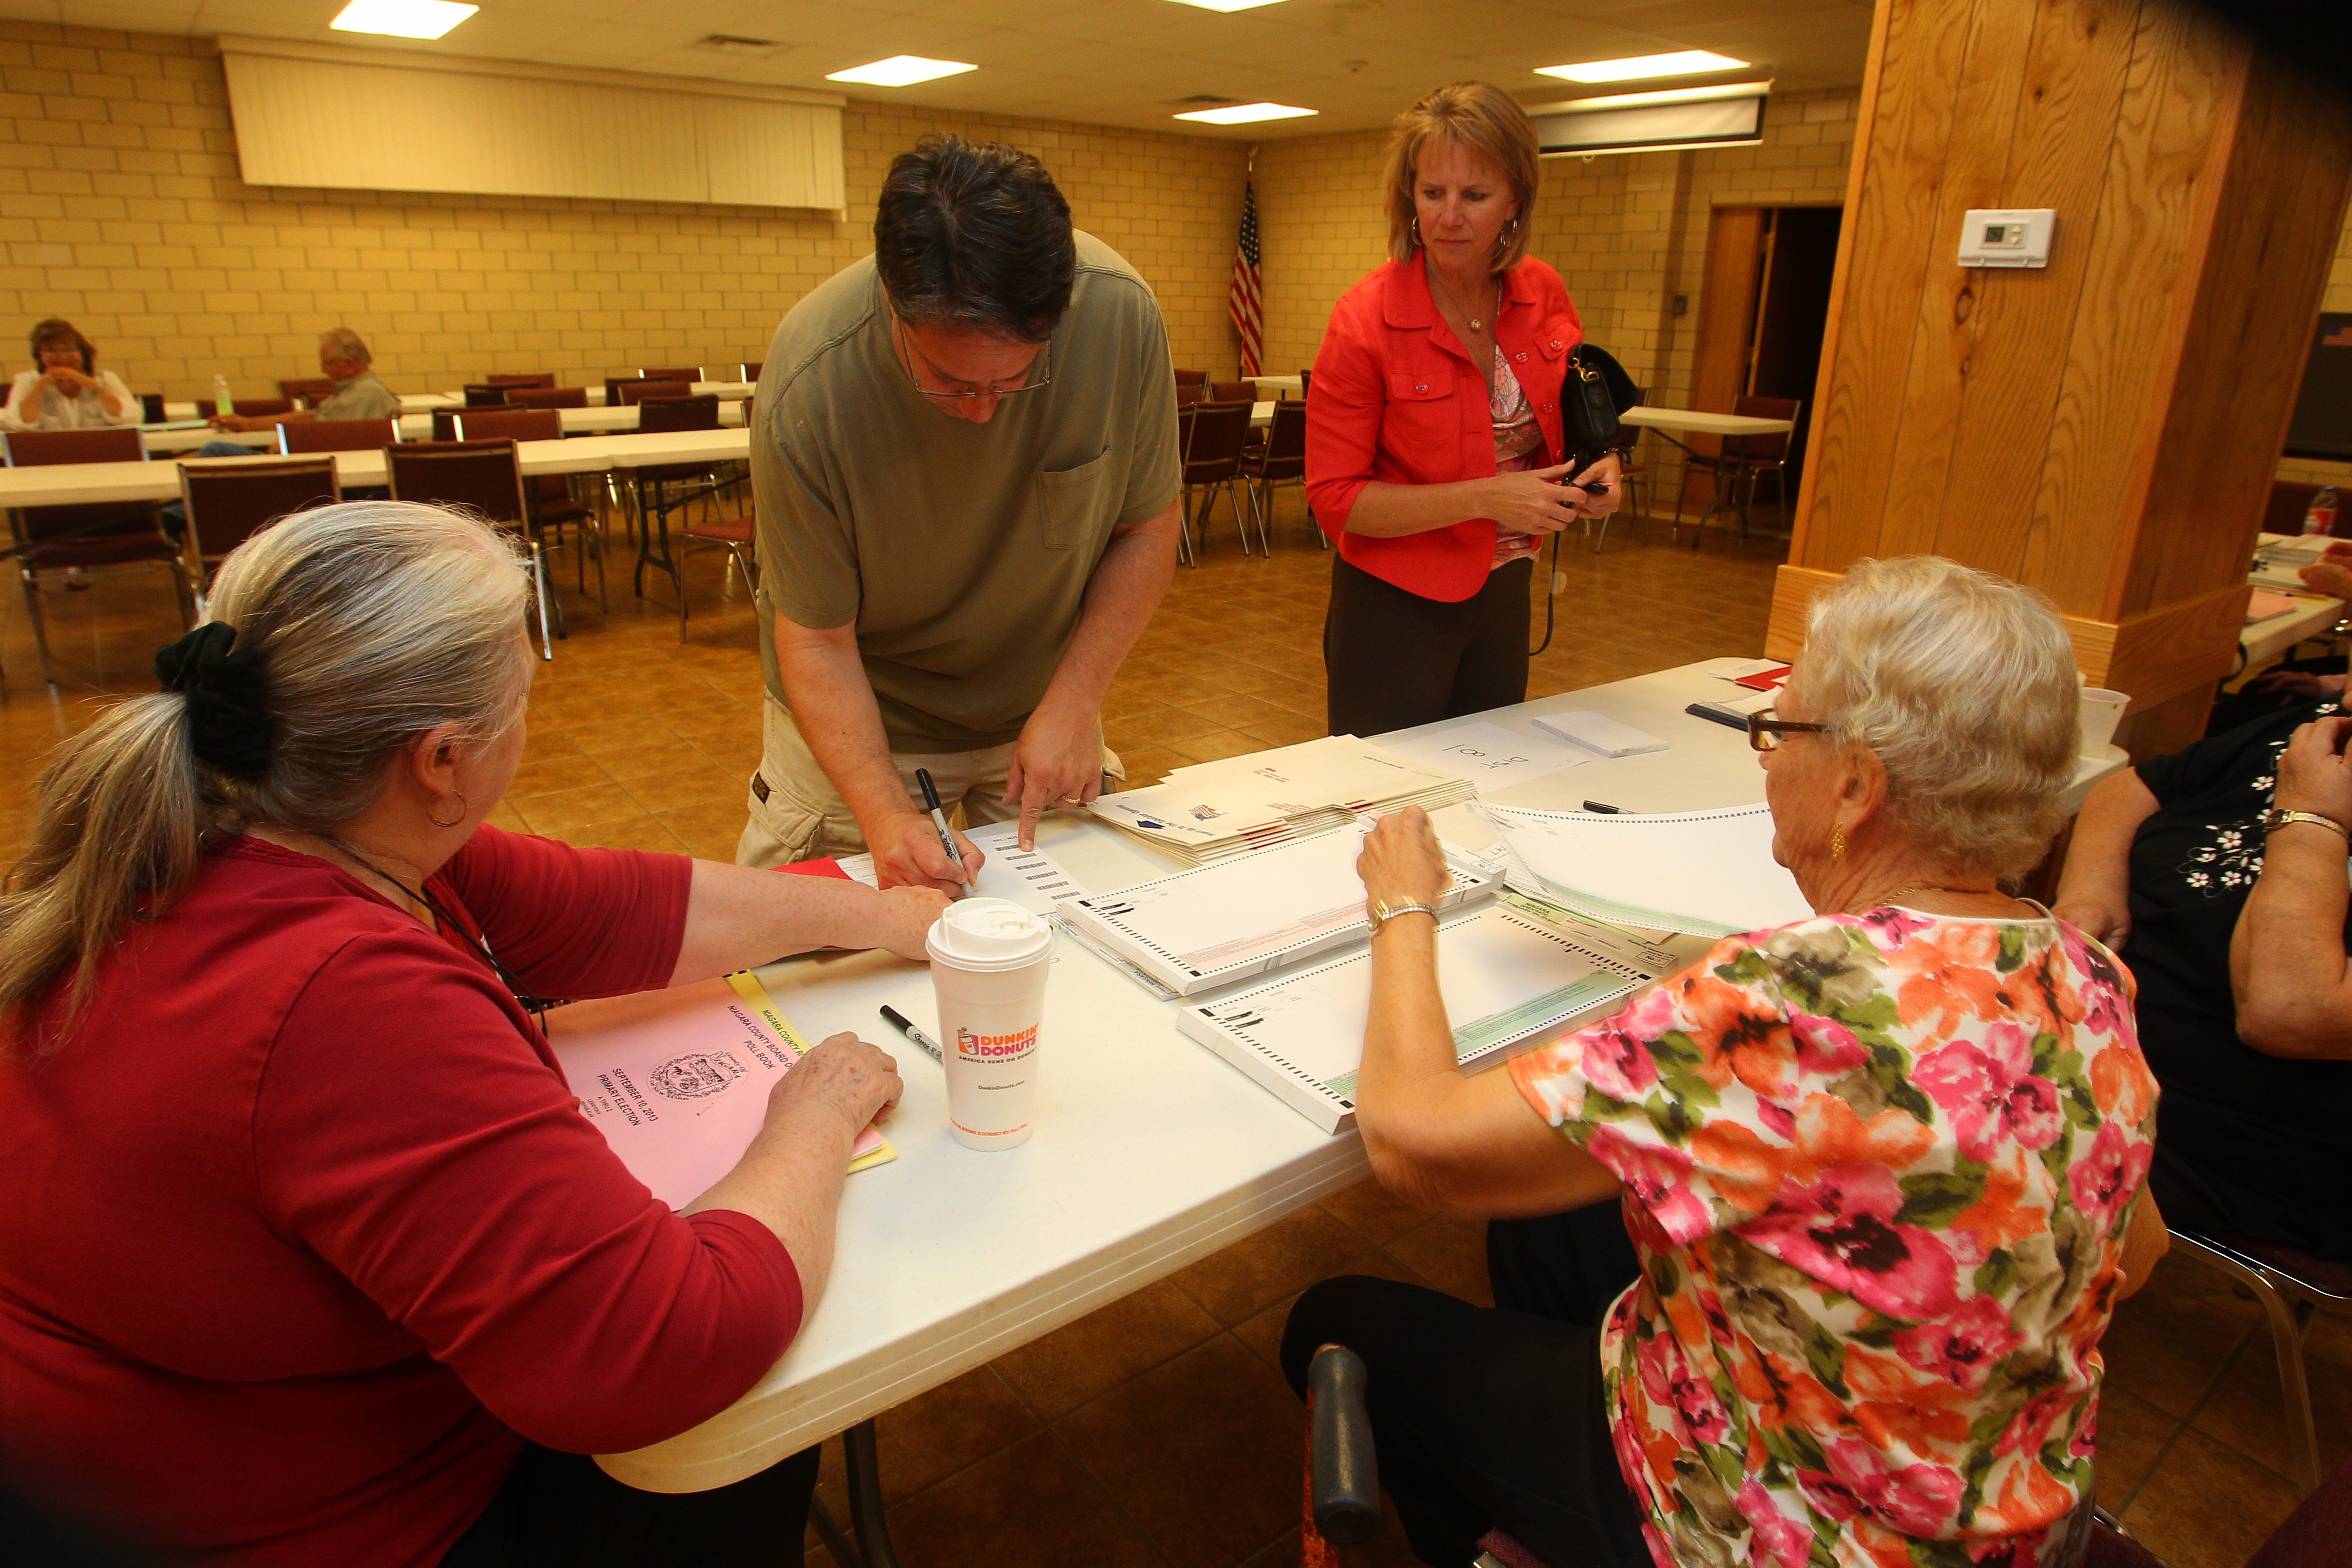 Elections inspector Virgina Boone, left, assists Leo Notaro, and elections inspector Elaine Pfohl helps Barb Walck in the primary election at Town of Niagara Active Hose on Sept. 10. They will be back in action Tuesday.